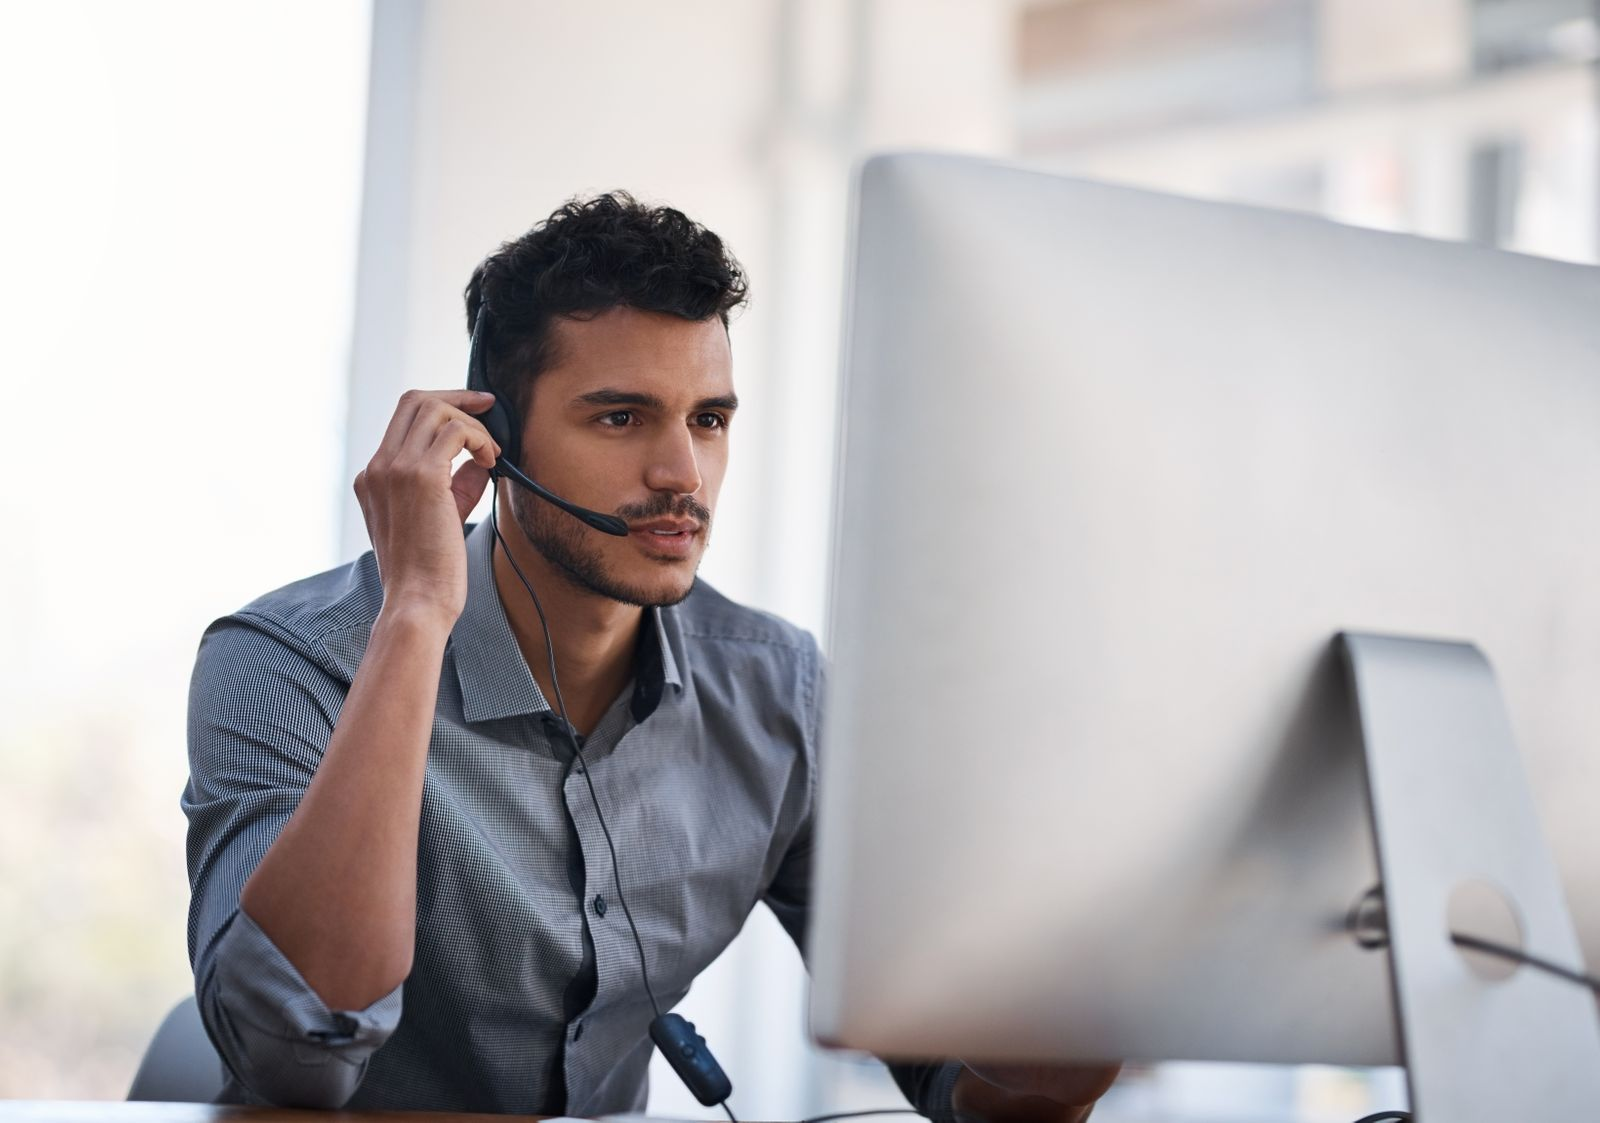 Employee working at computer with headset